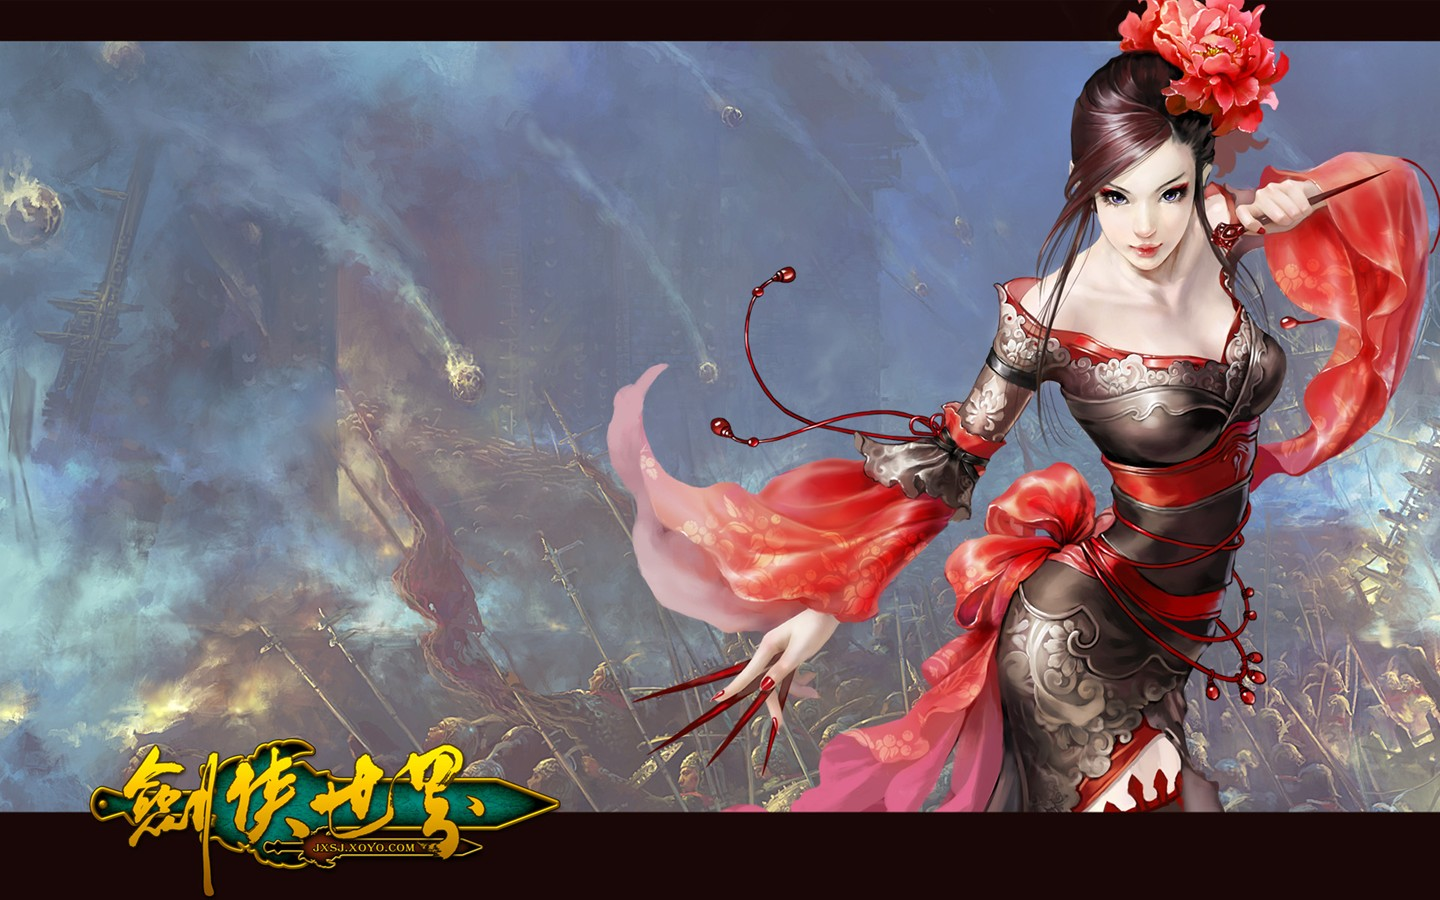 D of the swordsman in the world martial arts online game wallpaper 30246